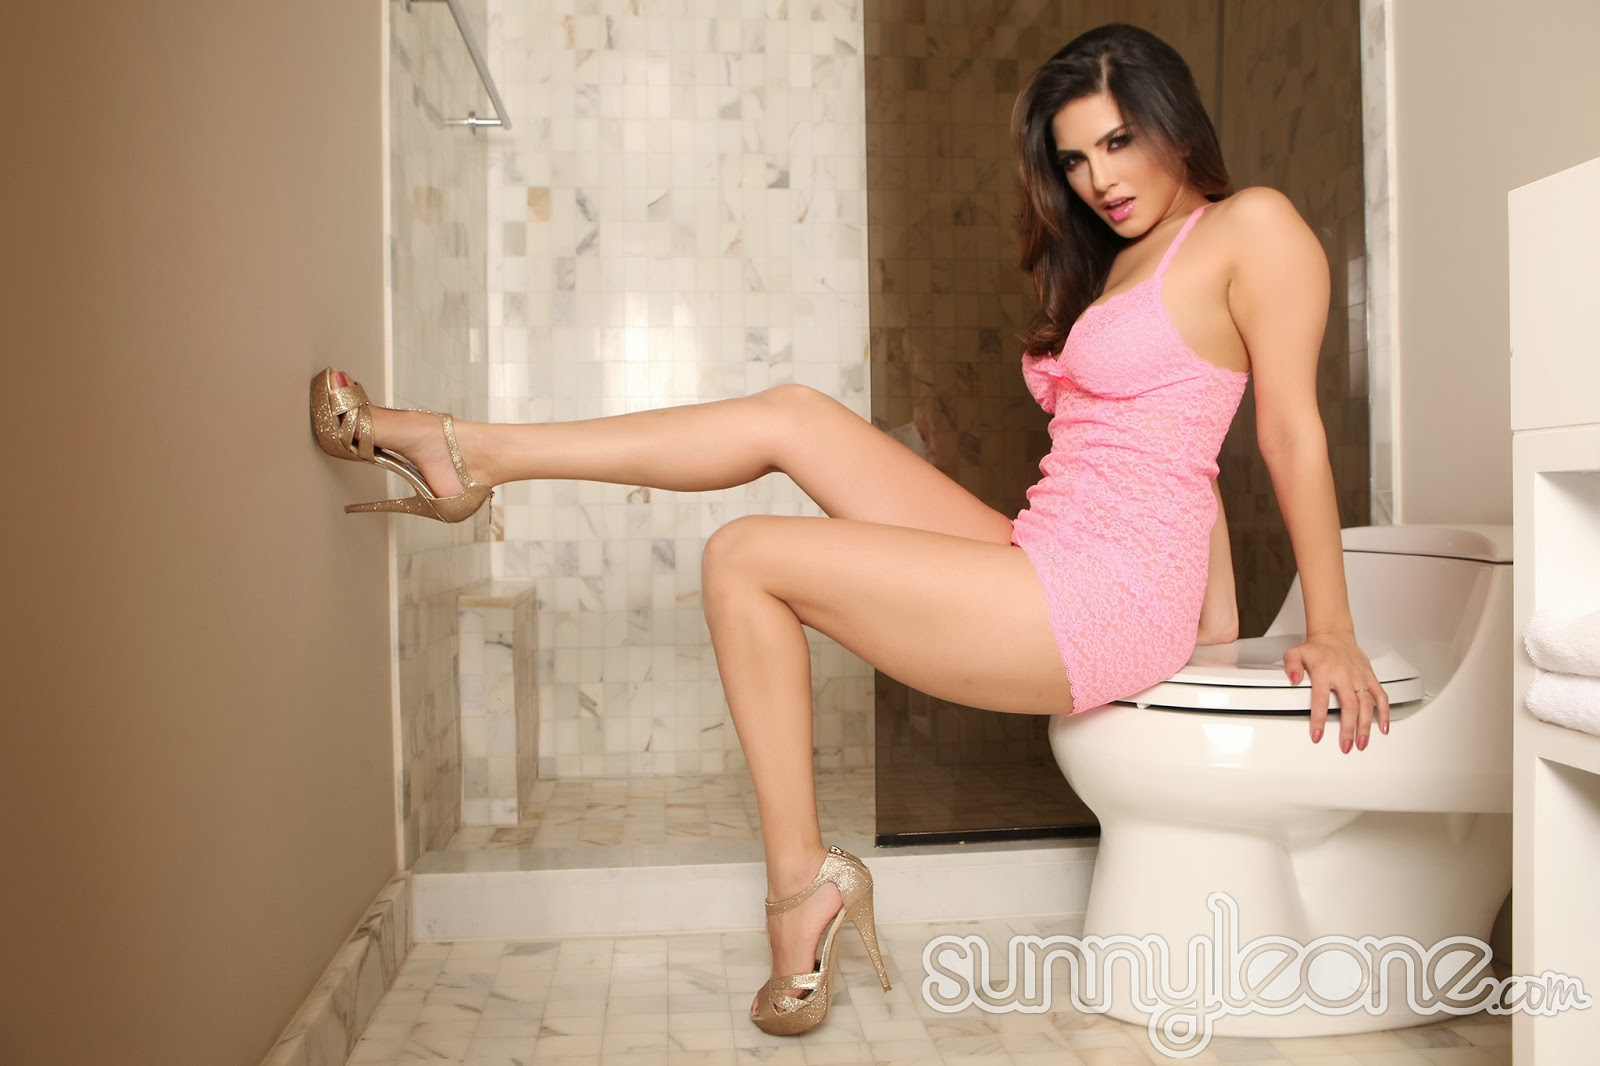 Sunny Leone Wallpapers Also Available in 1024x768,1280x1024 Screen